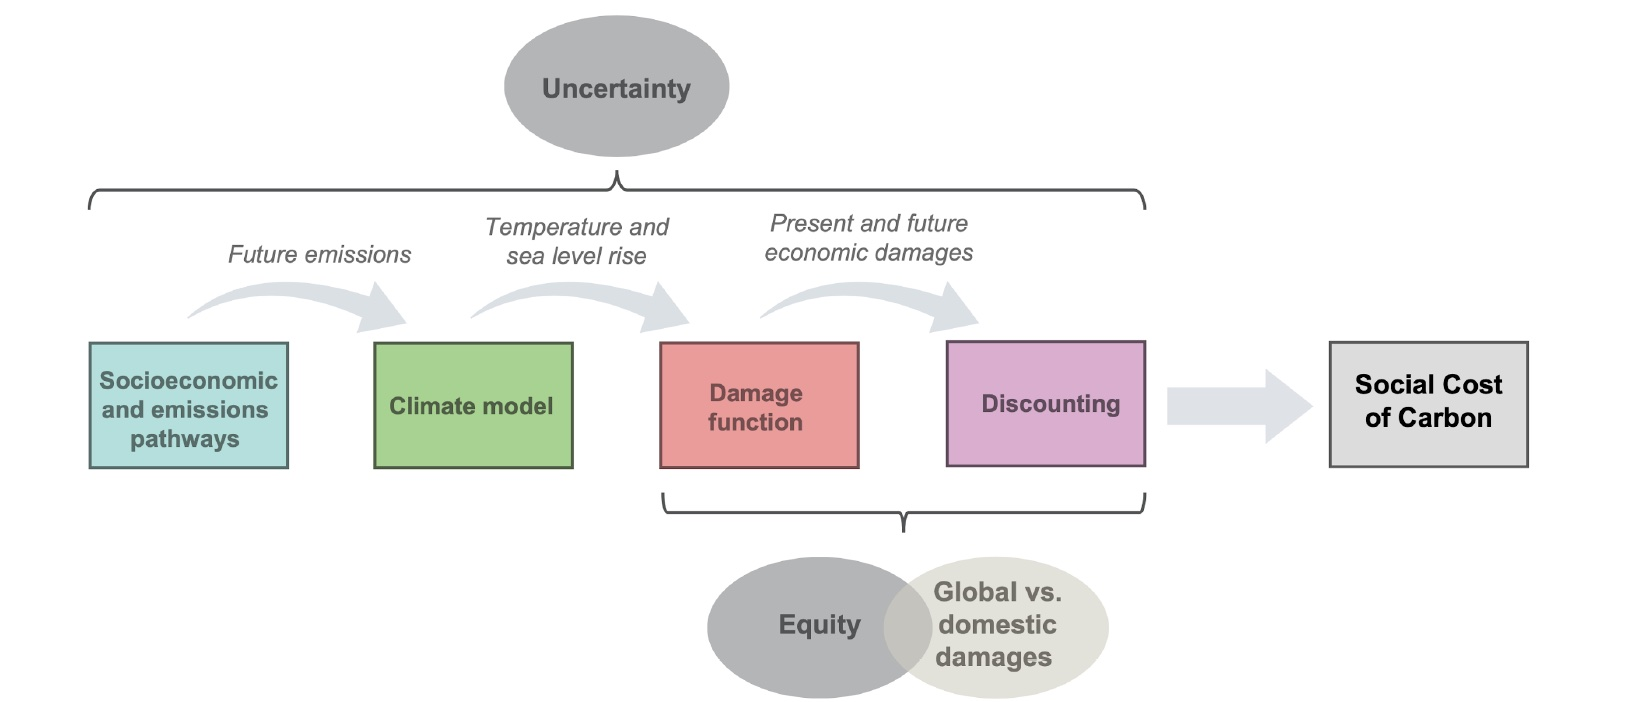 social cost of carbon, carbon, cost, scc, economics, equity, uncertainty, damages, climate change, discounting